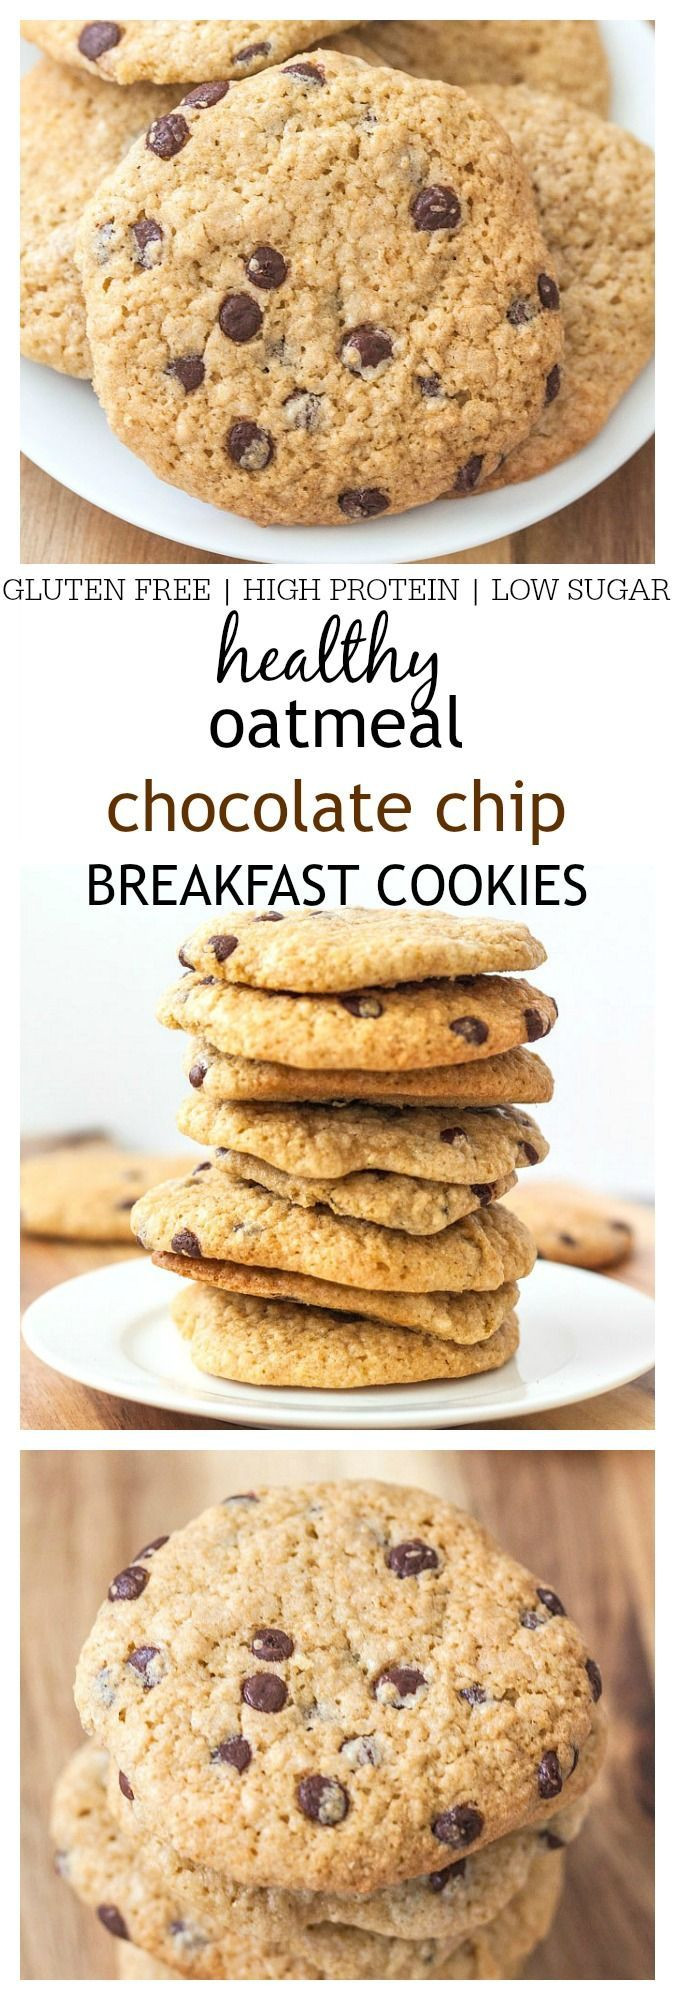 Healthy Gluten Free Cookie Recipes  17 Best images about Breakfast that Rachie might eat